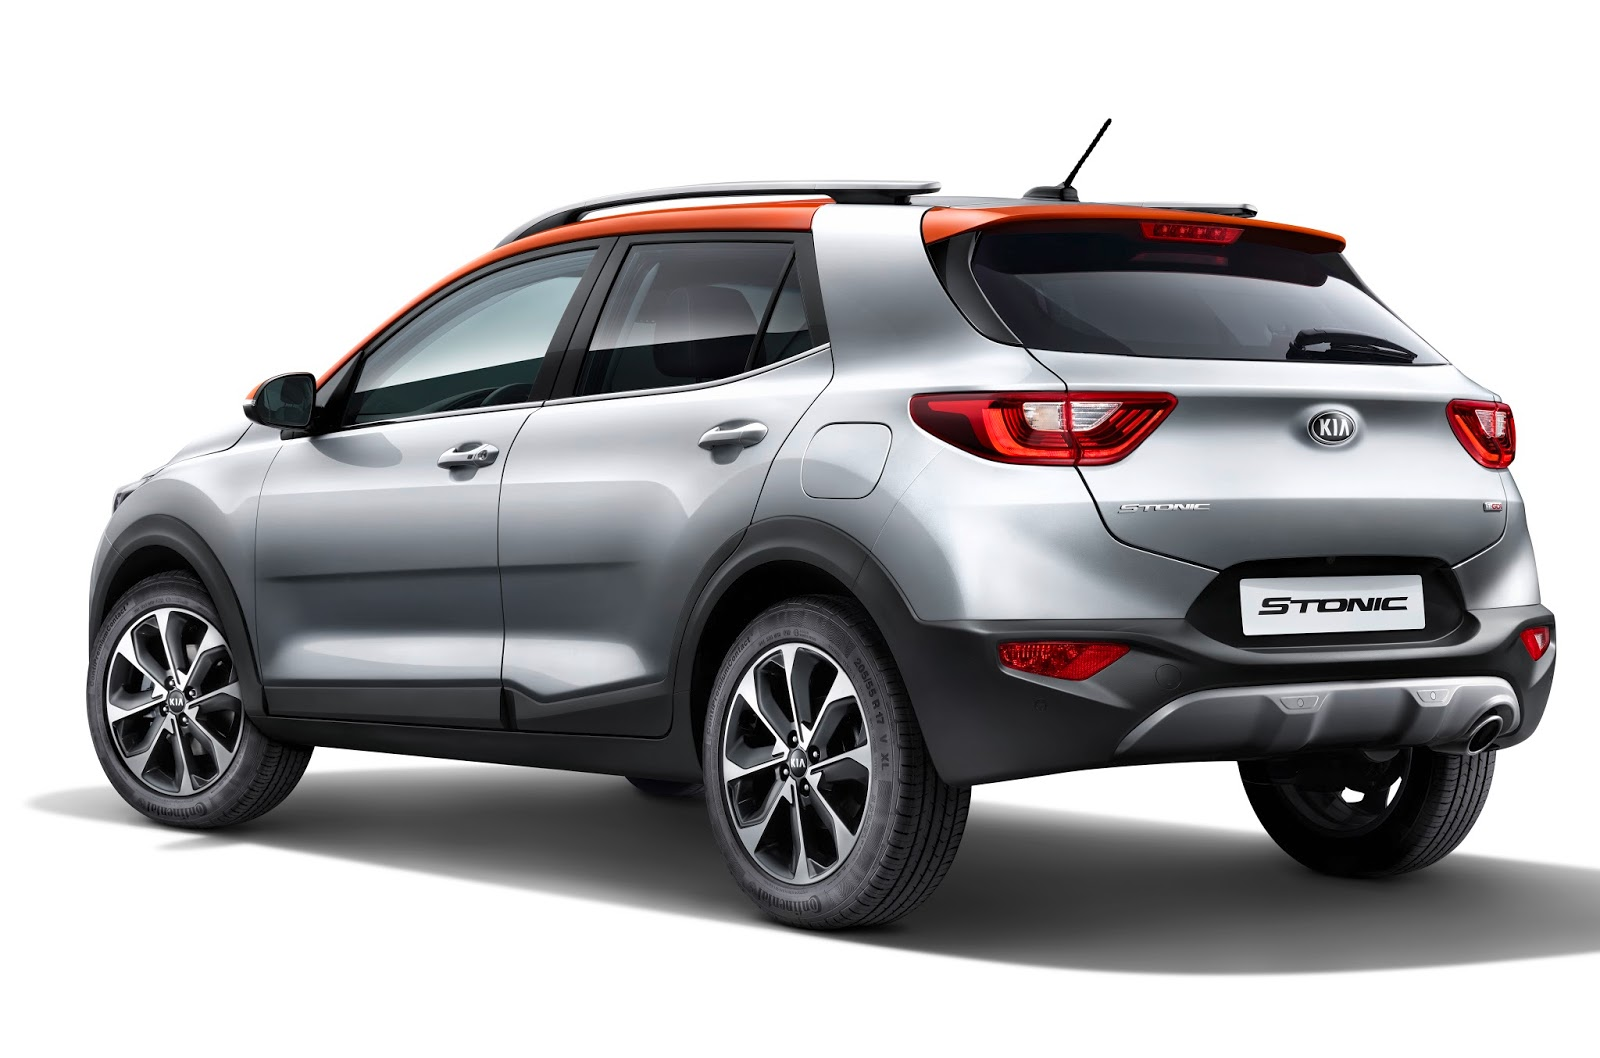 Kia wk deals gymboree online coupon june 2018 sells and services kia vehicles in the greater stease ask for more photos of the individual item in question before purchase if you are in doubt of fandeluxe Image collections